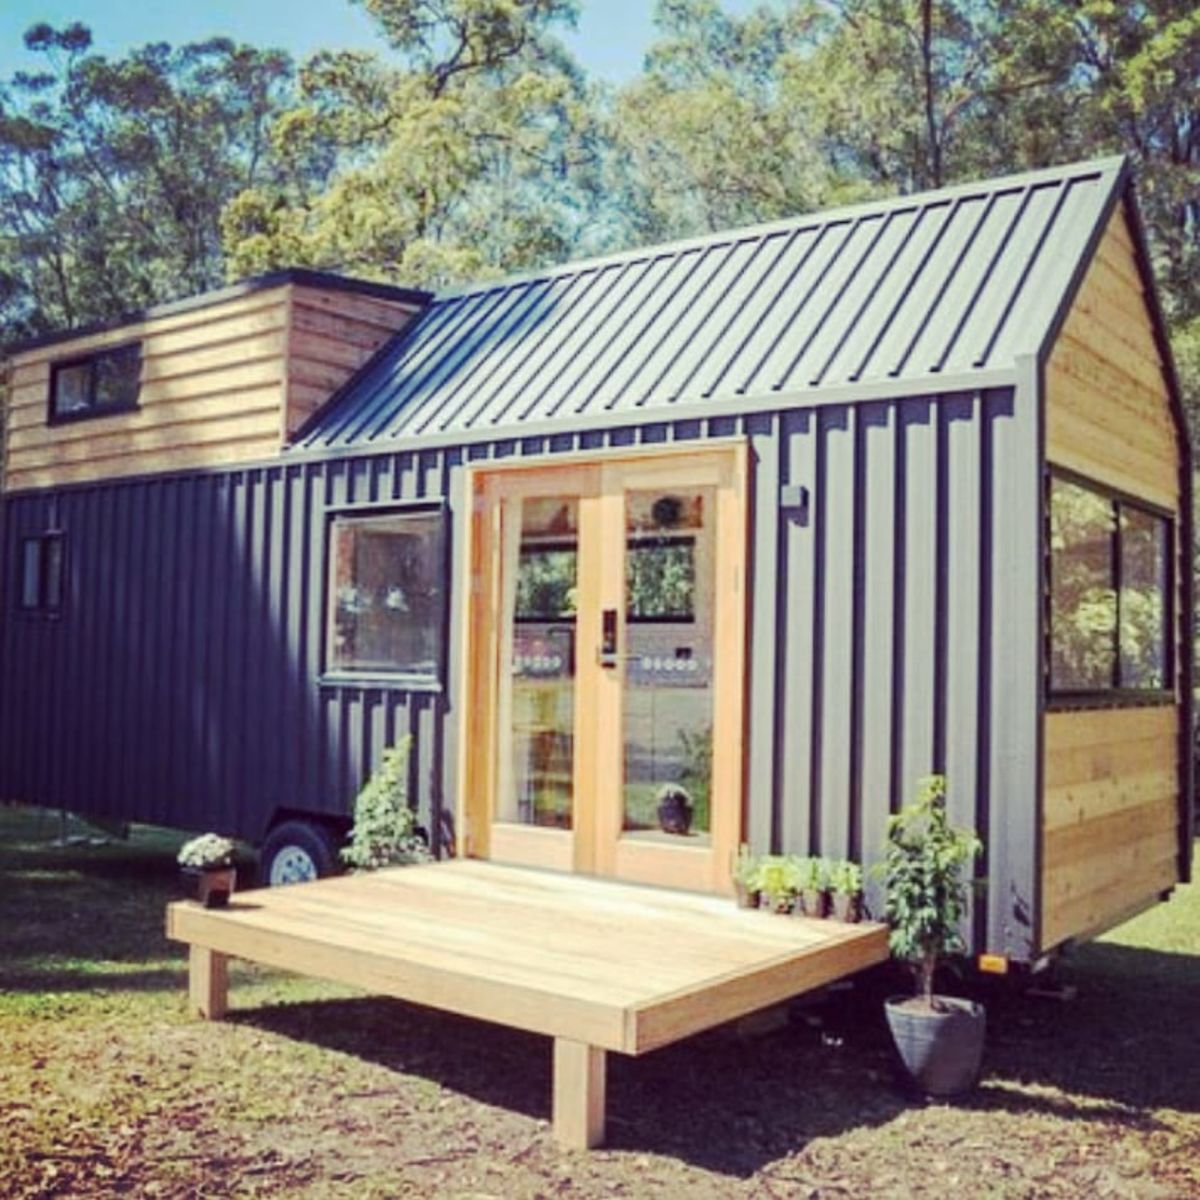 Tiny Houses For Sale In California